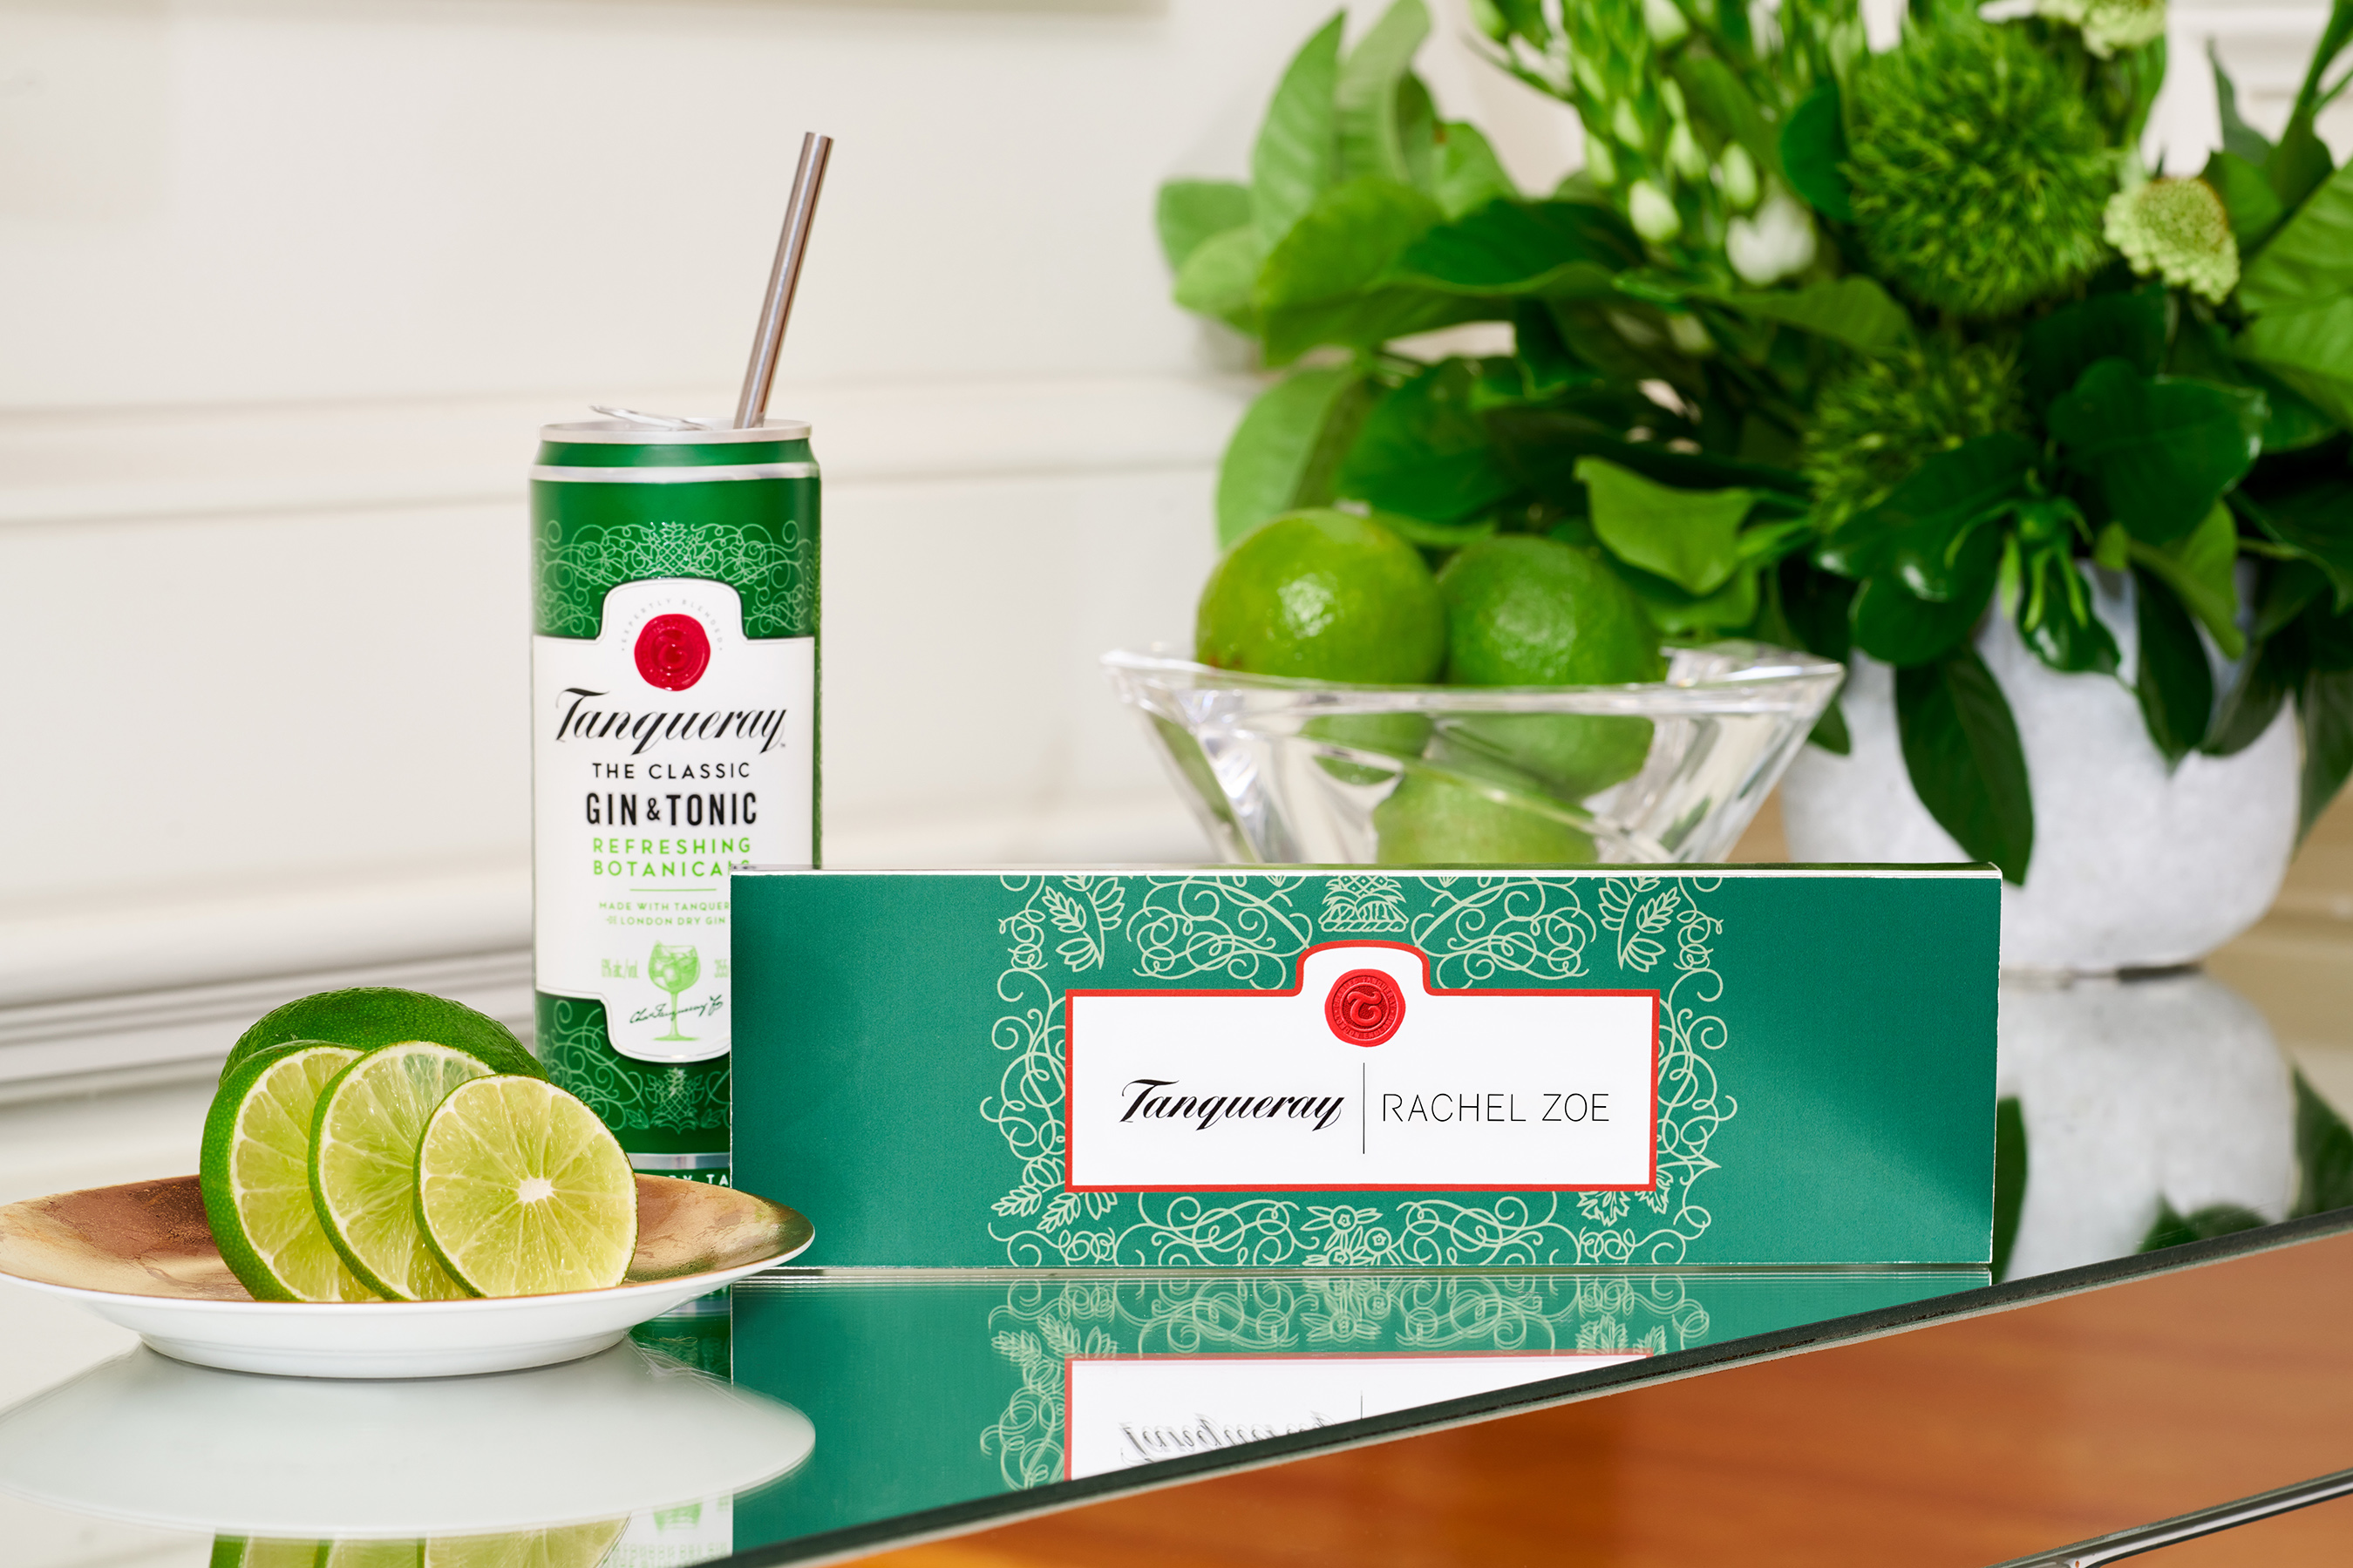 Tanqueray Gin & Tonic with the Rachel Zoe x Tanqueray Straw Capsule Collection